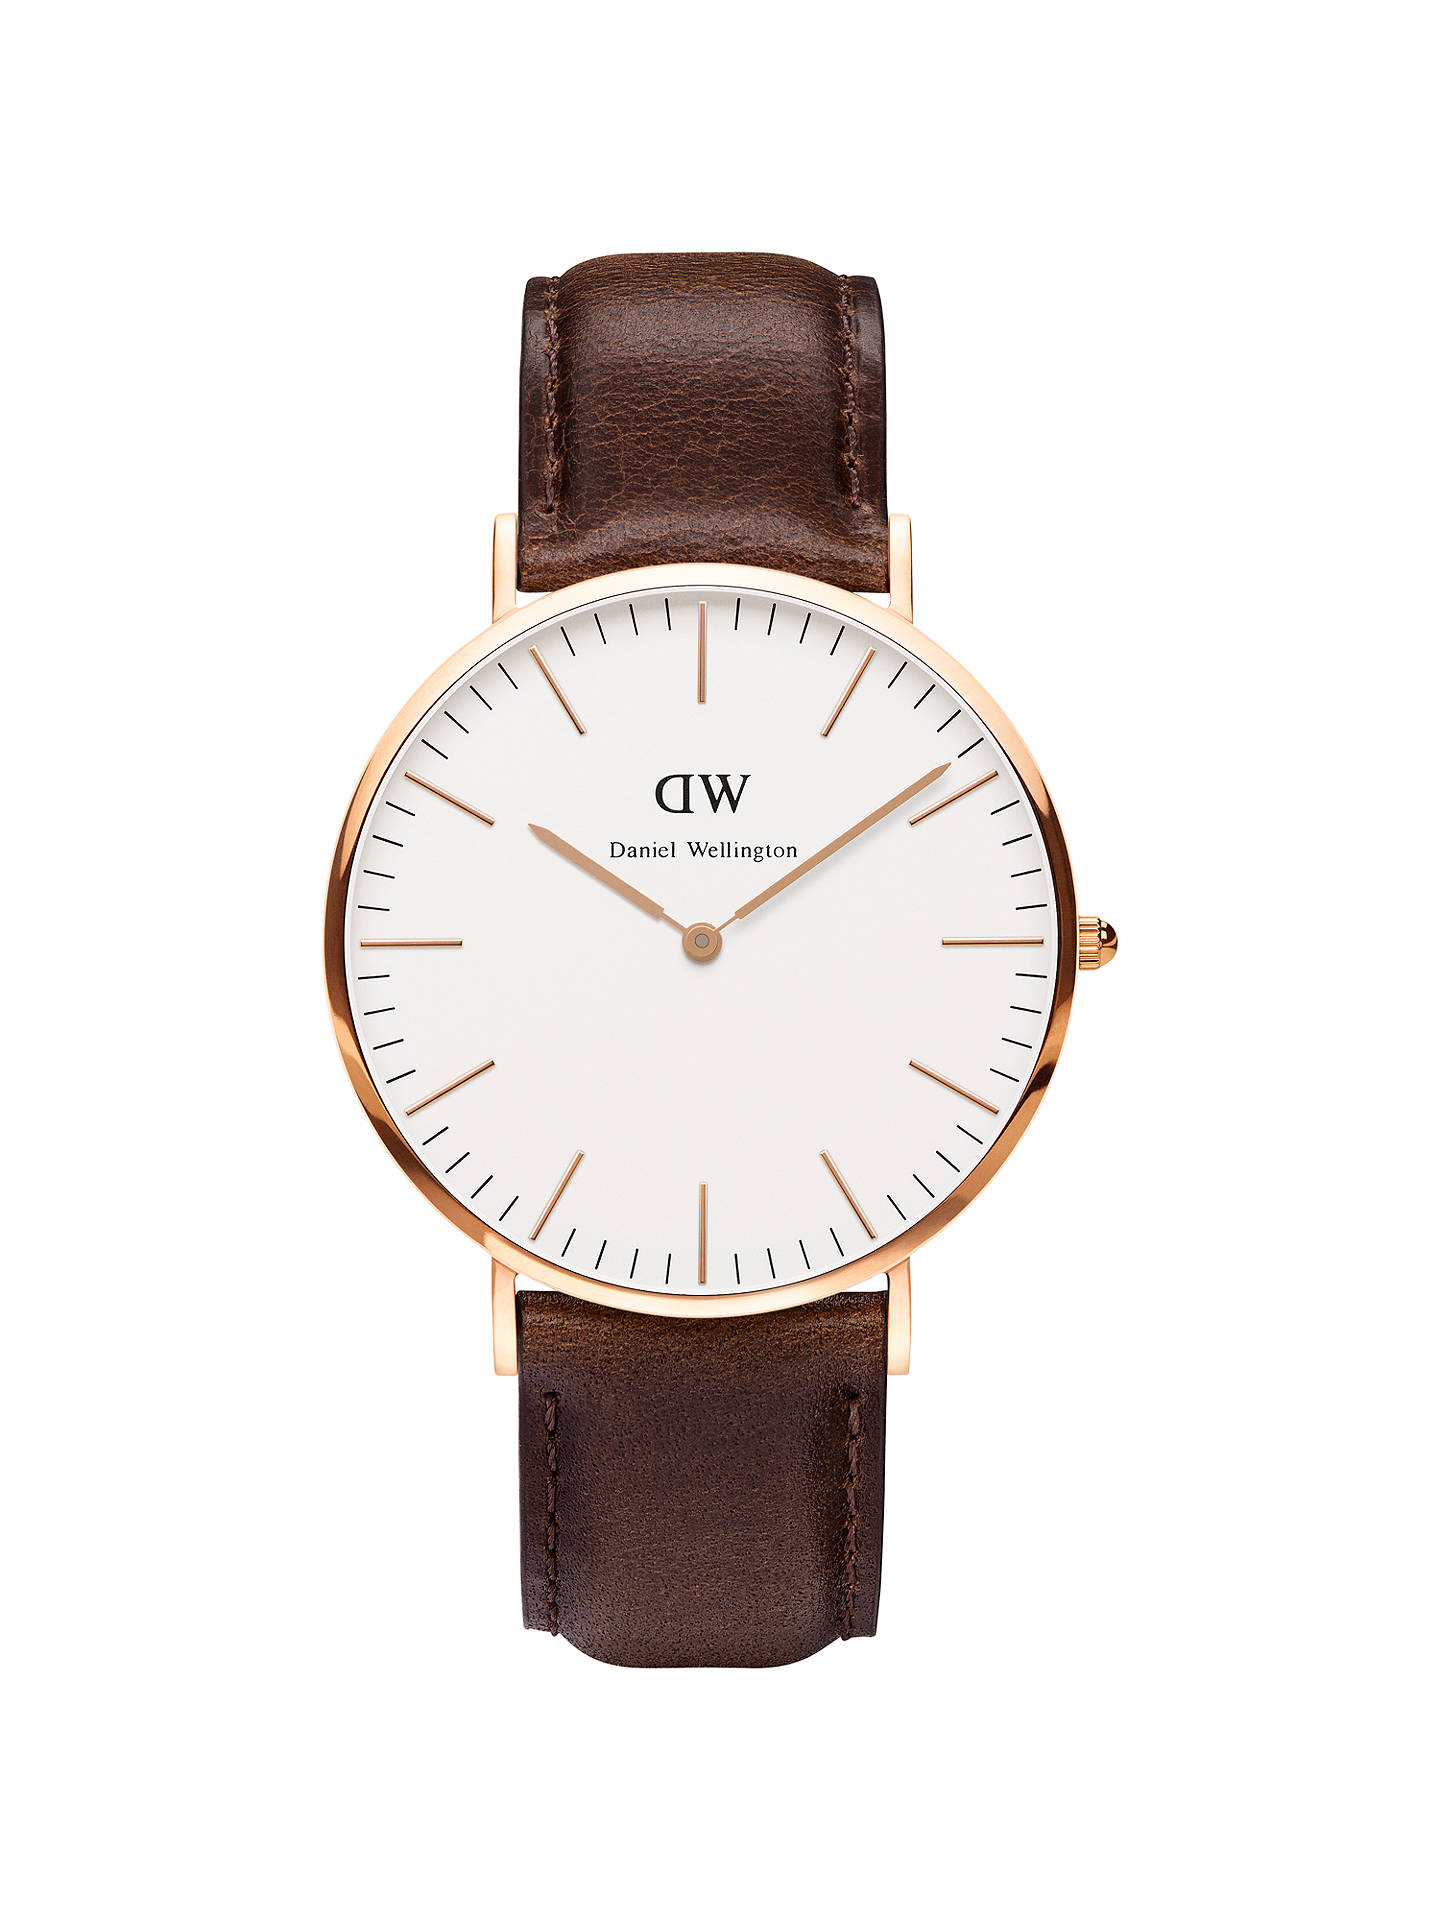 cee6e70f7 Buy Daniel Wellington DW00100009 Men's Classy Rose Gold Plated Leather  Strap Watch, Brown/White ...